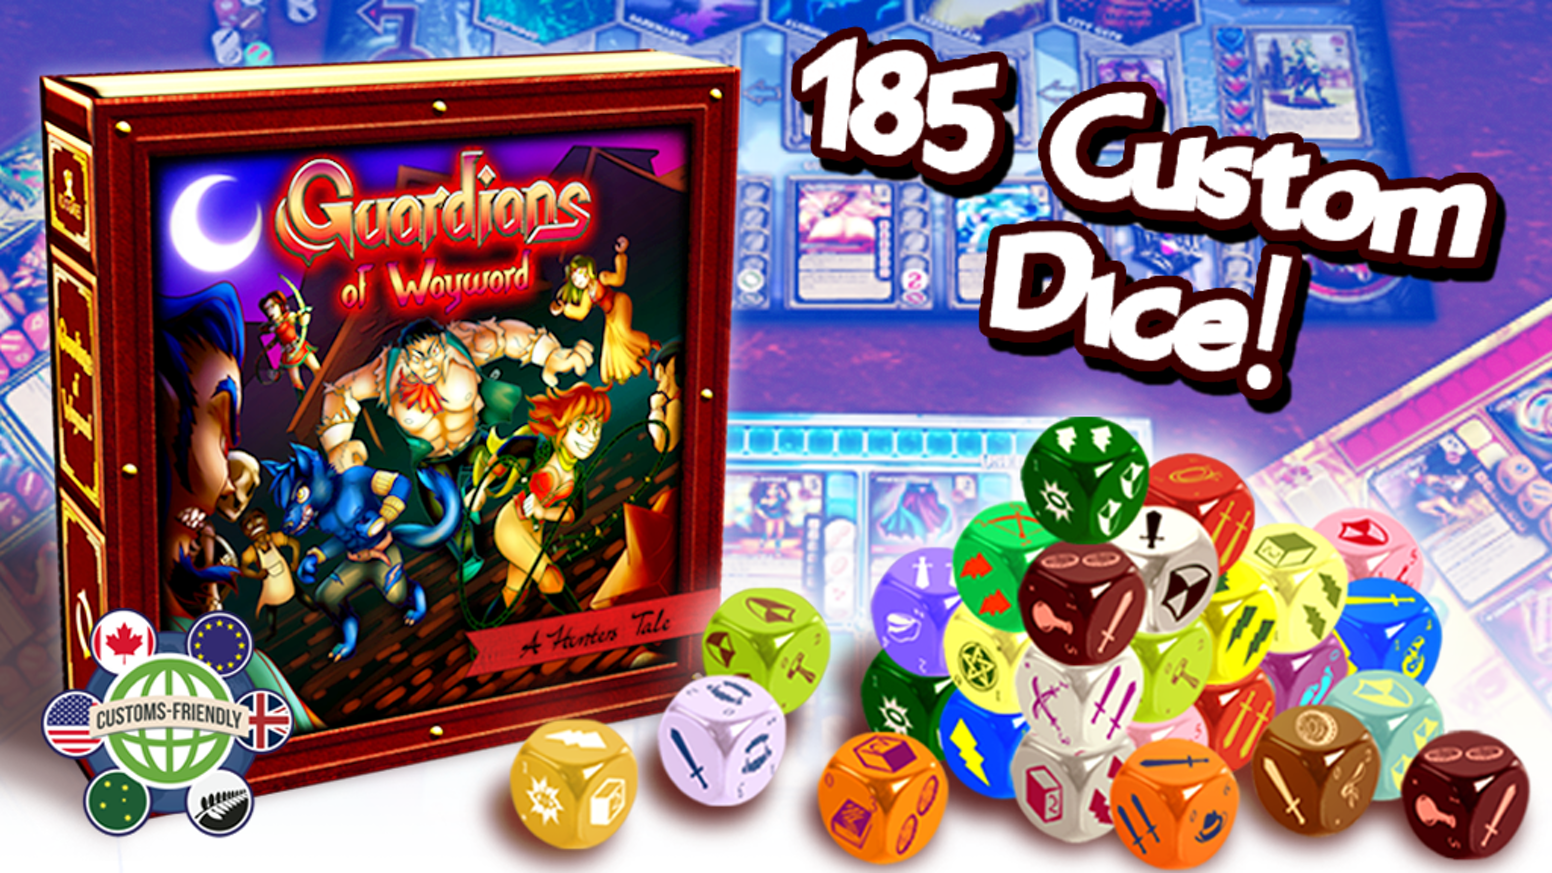 A  cooperative/competitive game of dice building, card drafting and unique player powers for 1-4 players with over 185 custom dice!